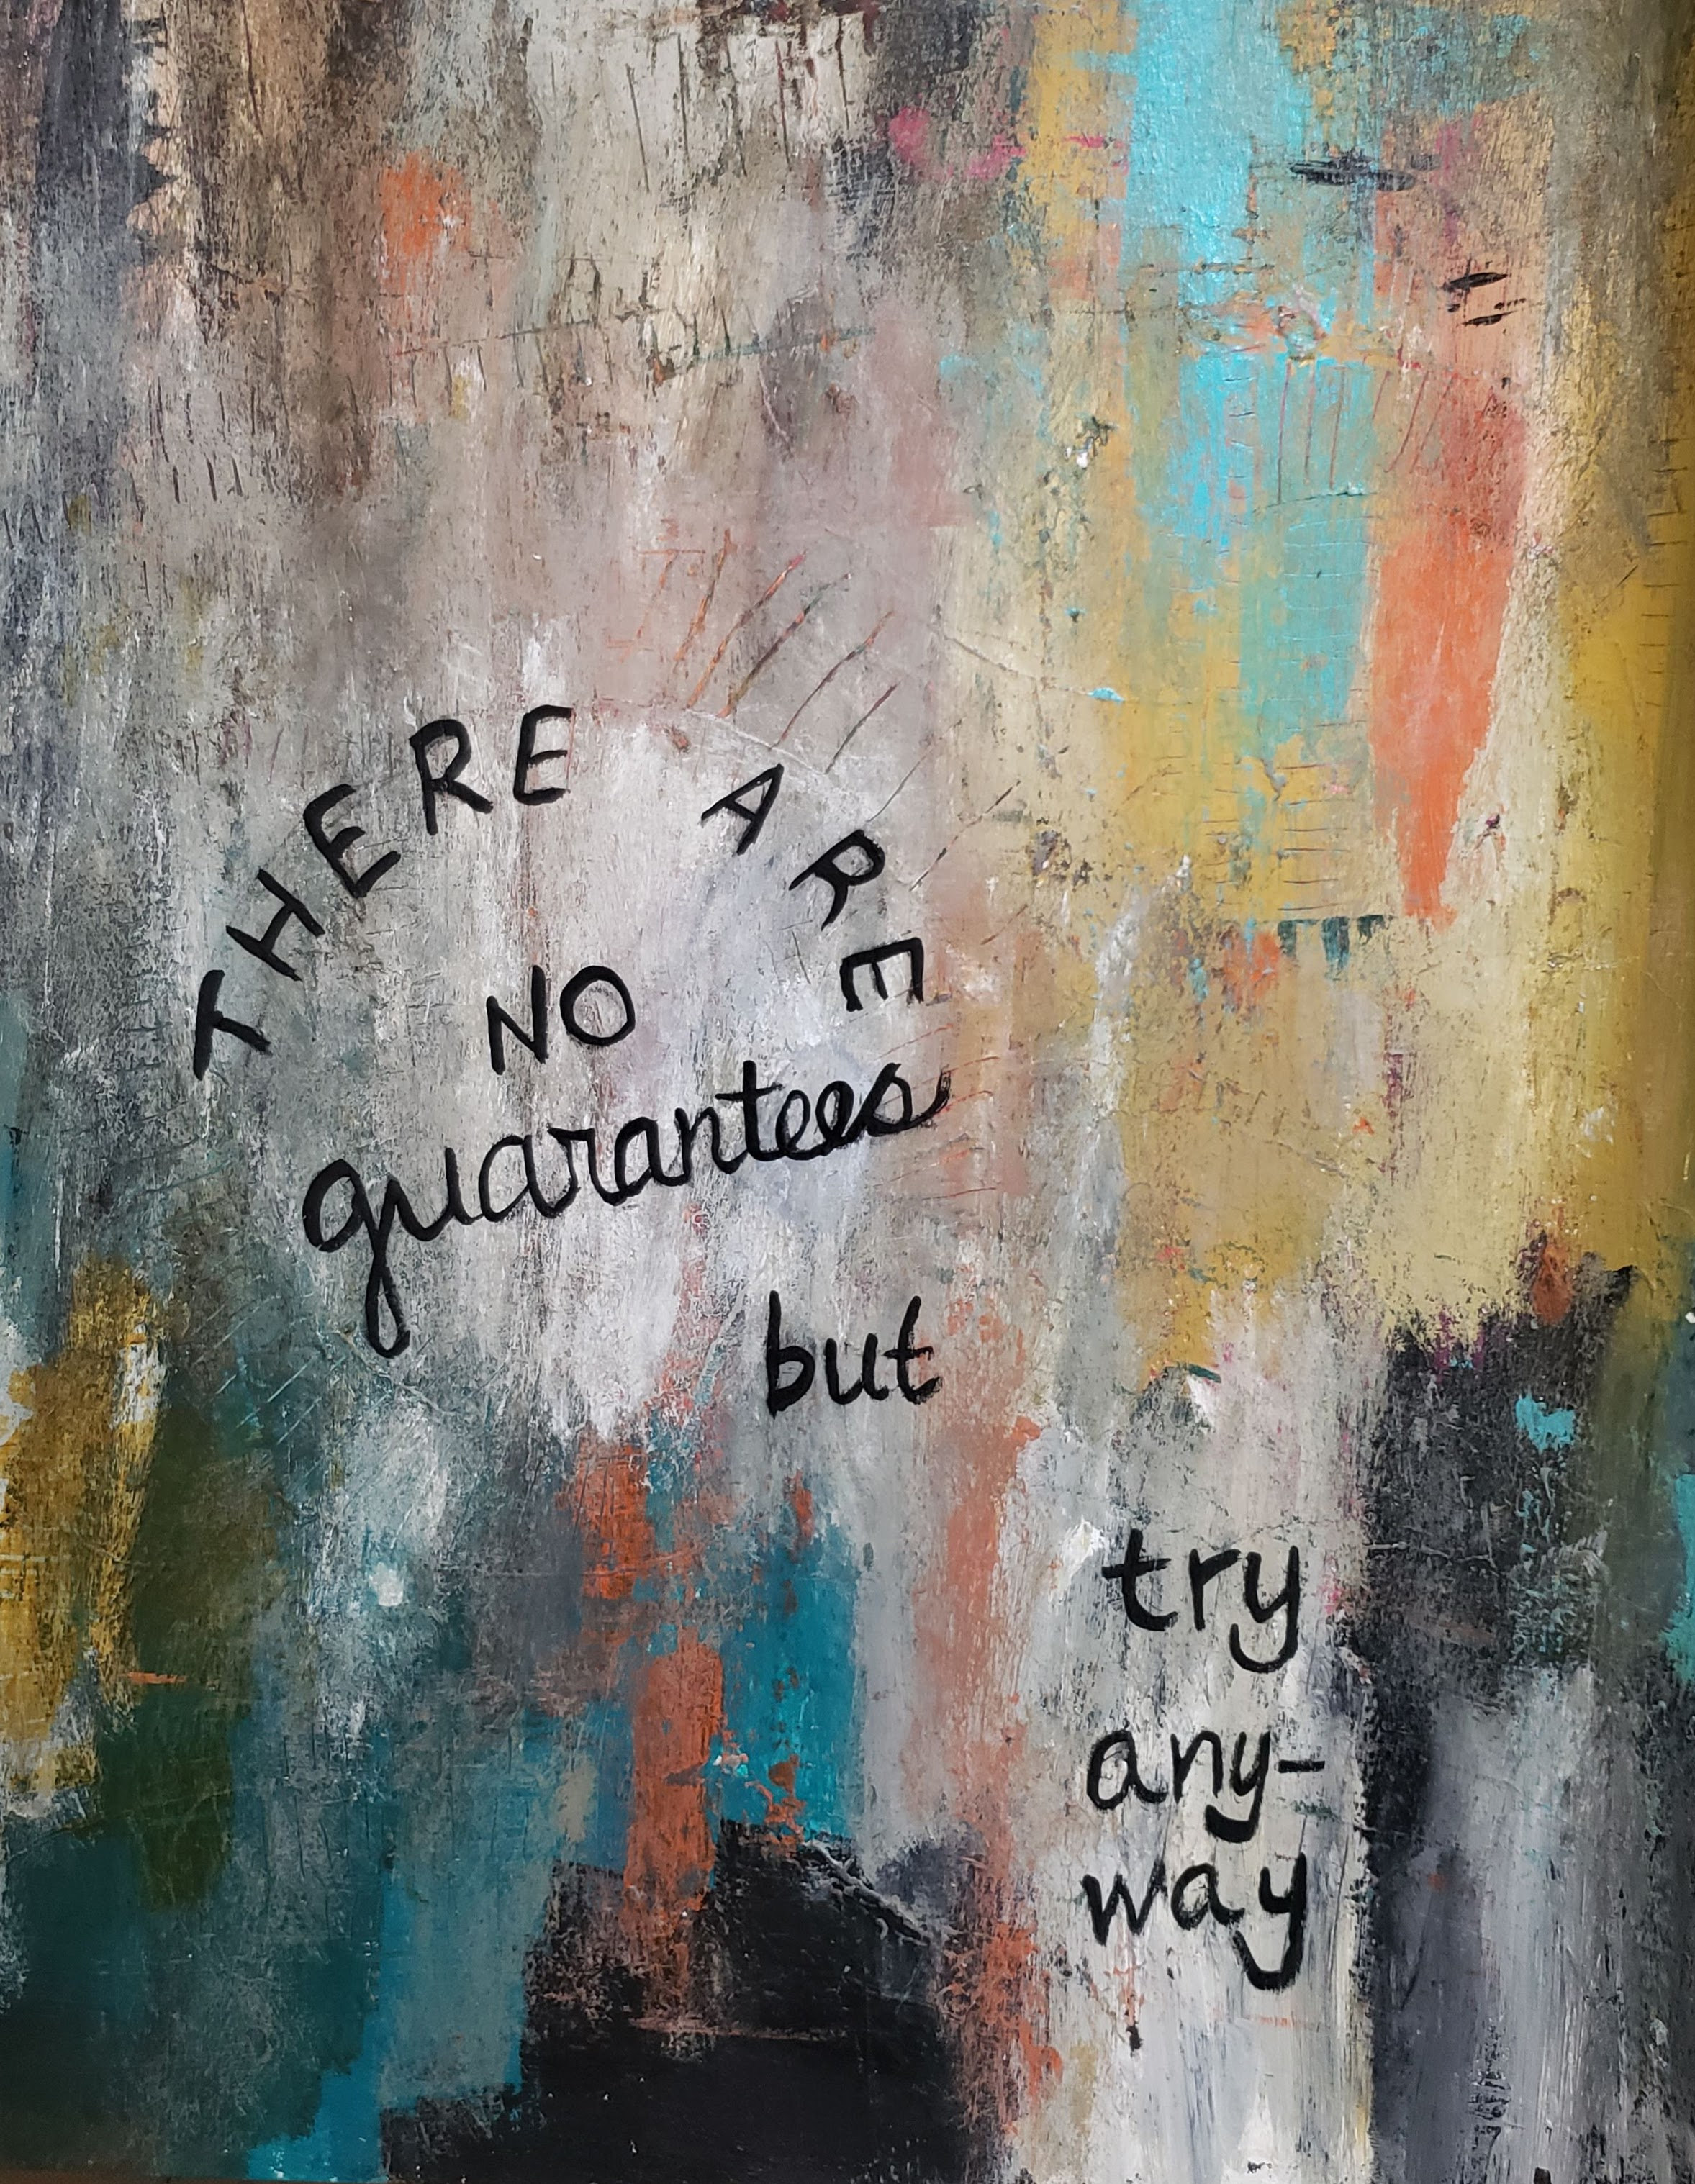 There are no guarantees but try anyway